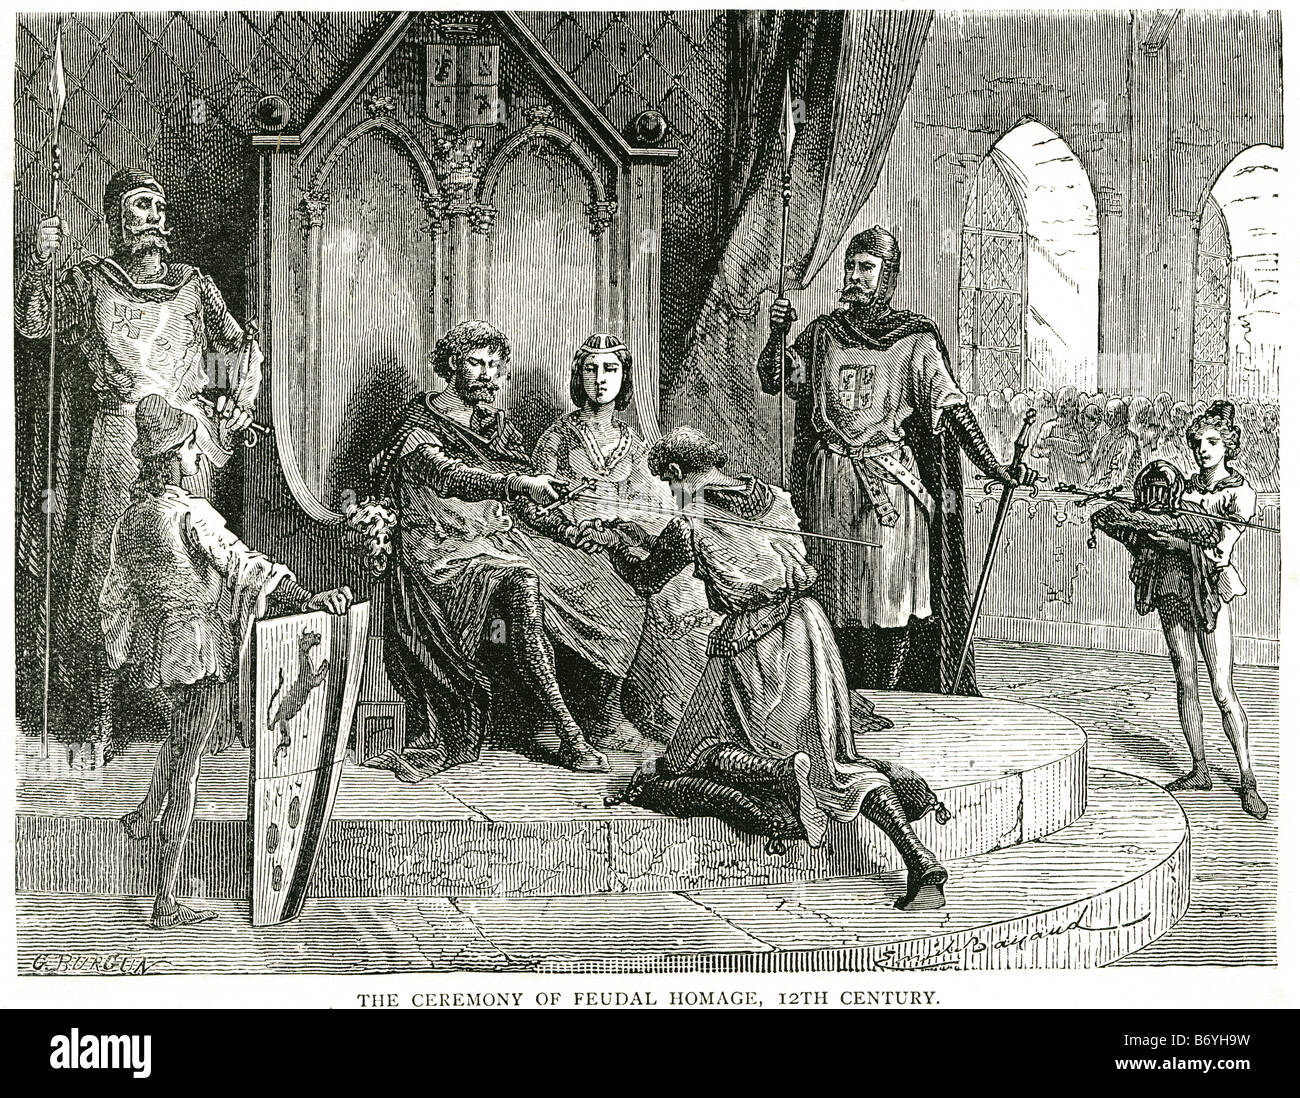 the ceramony of feudal homage 12th centuary Homage in the Middle Ages was the ceremony in which a feudal tenant - Stock Image